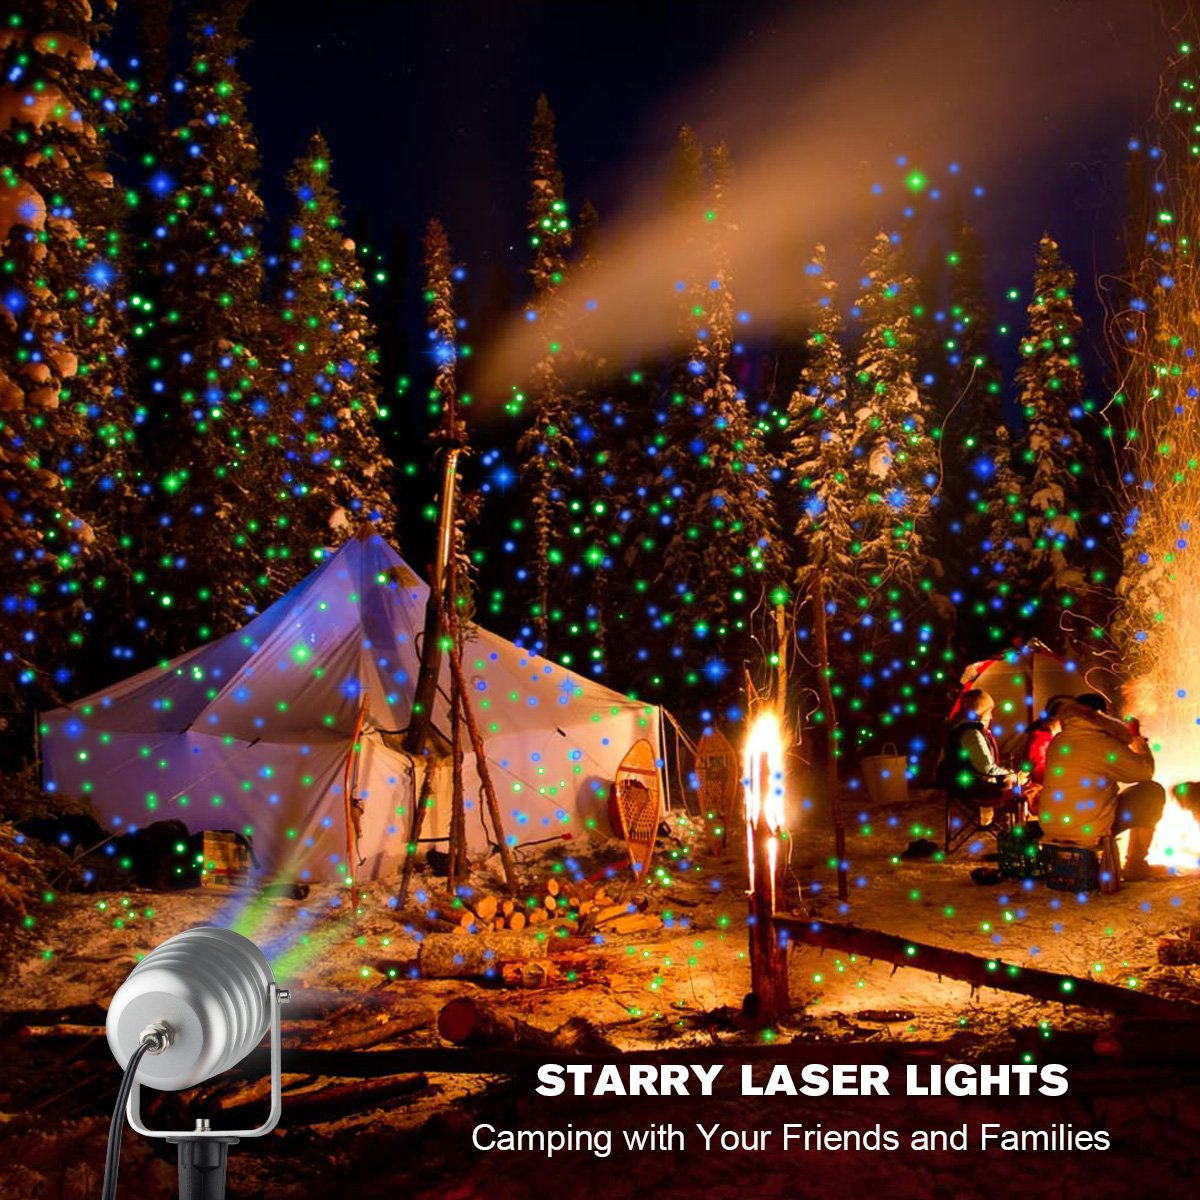 Amazon.com: Christmas Laser Lights Outdoor Projector Lights Moving ...